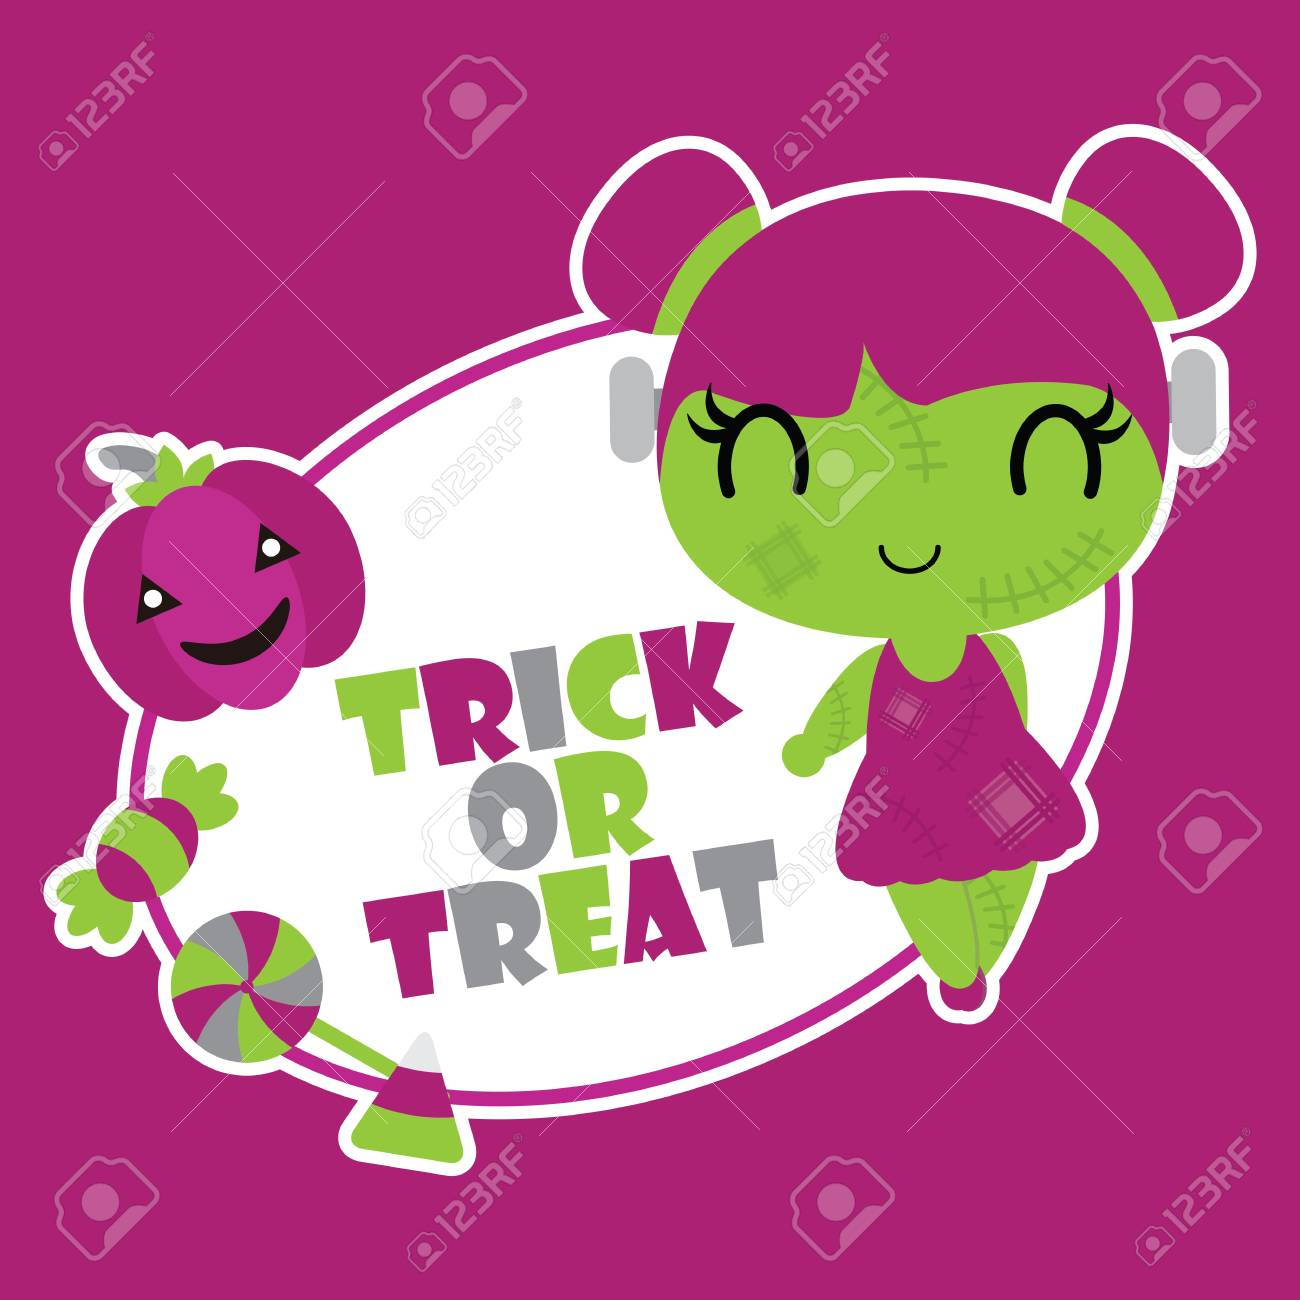 Best Wallpaper Halloween Pink - 85132261-cute-zombie-girl-with-trick-and-treat-text-vector-cartoon-illustration-for-halloween-card-design-wal  Image_151130.jpg